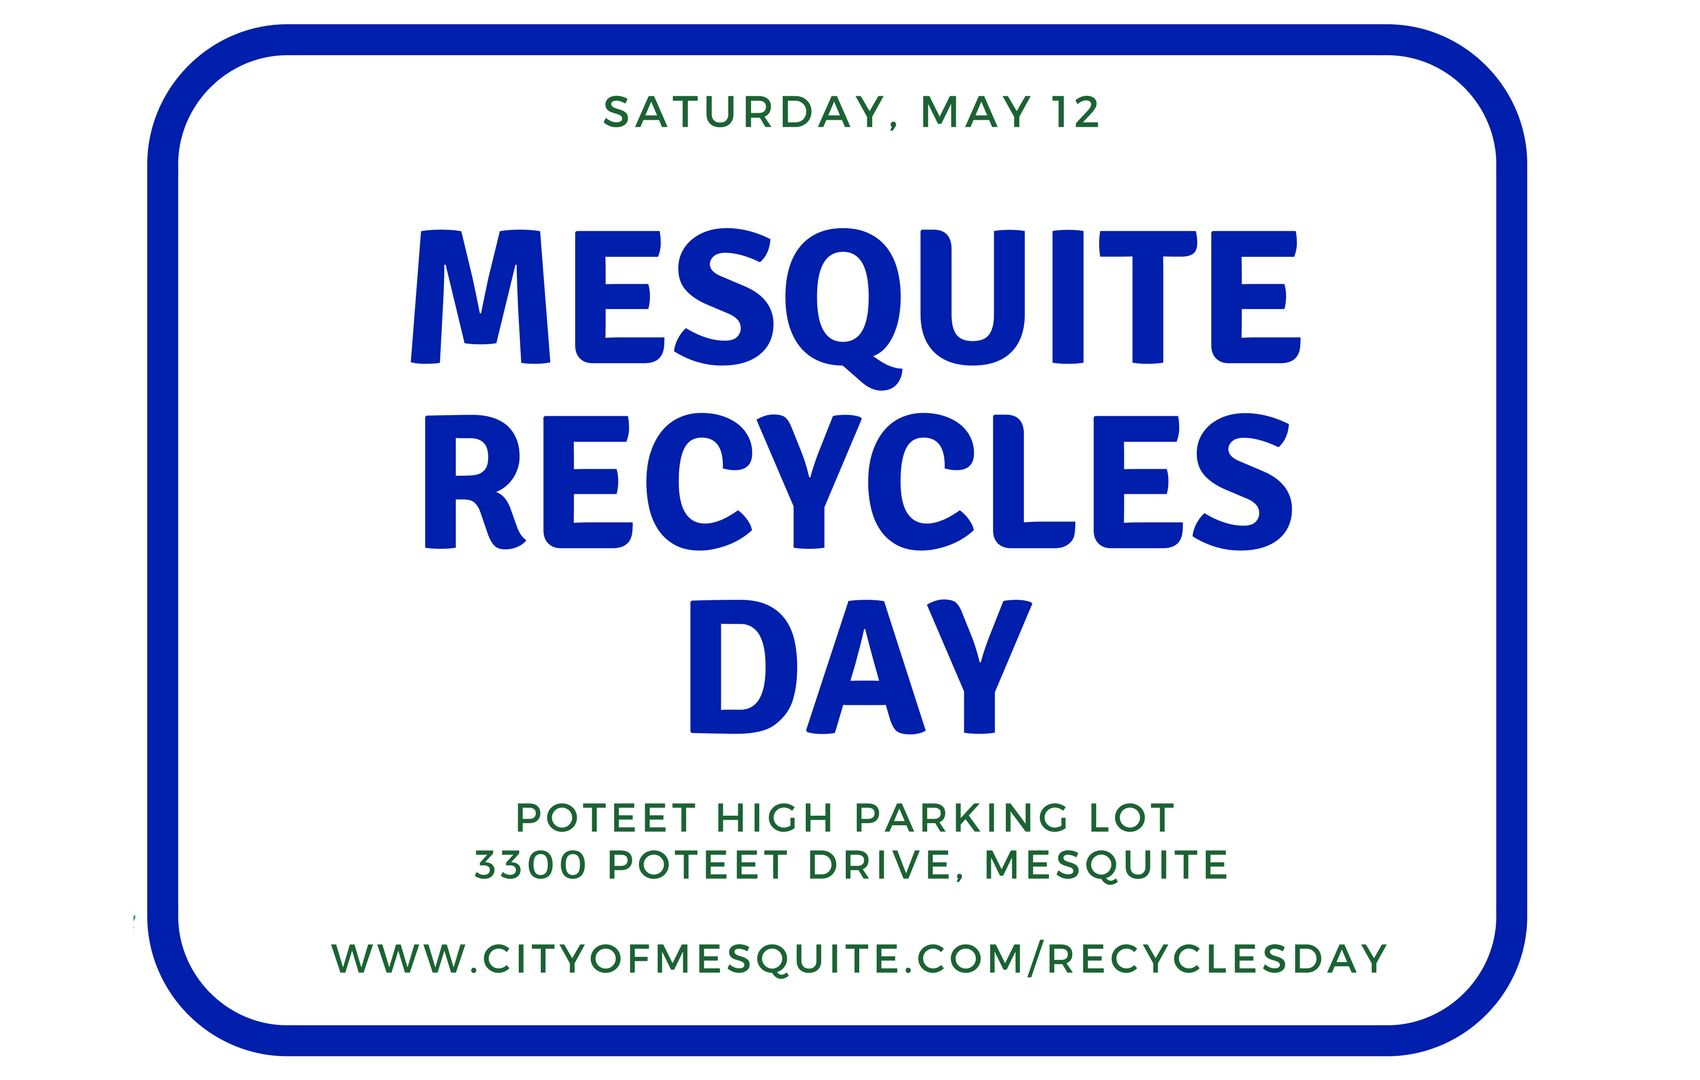 mesquite recycles day